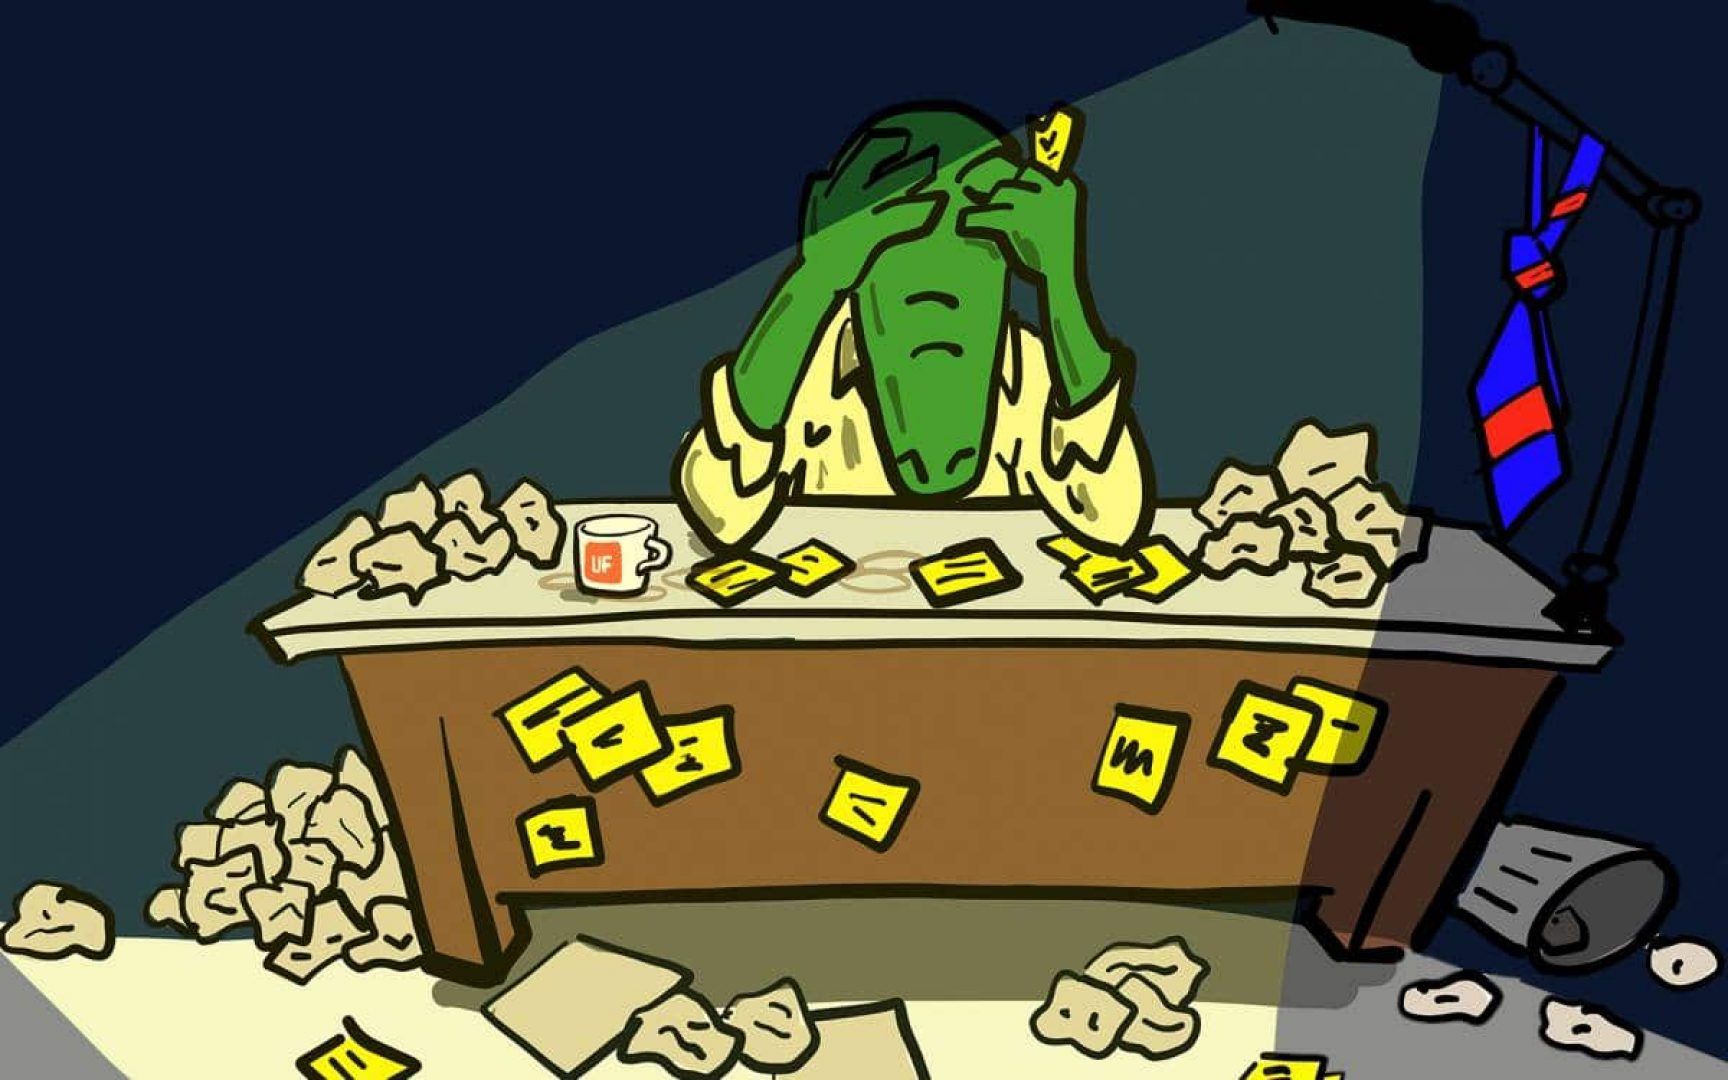 Cartoon gator sitting at a desk with lots of crumpled up papers looking down with his head in his hands